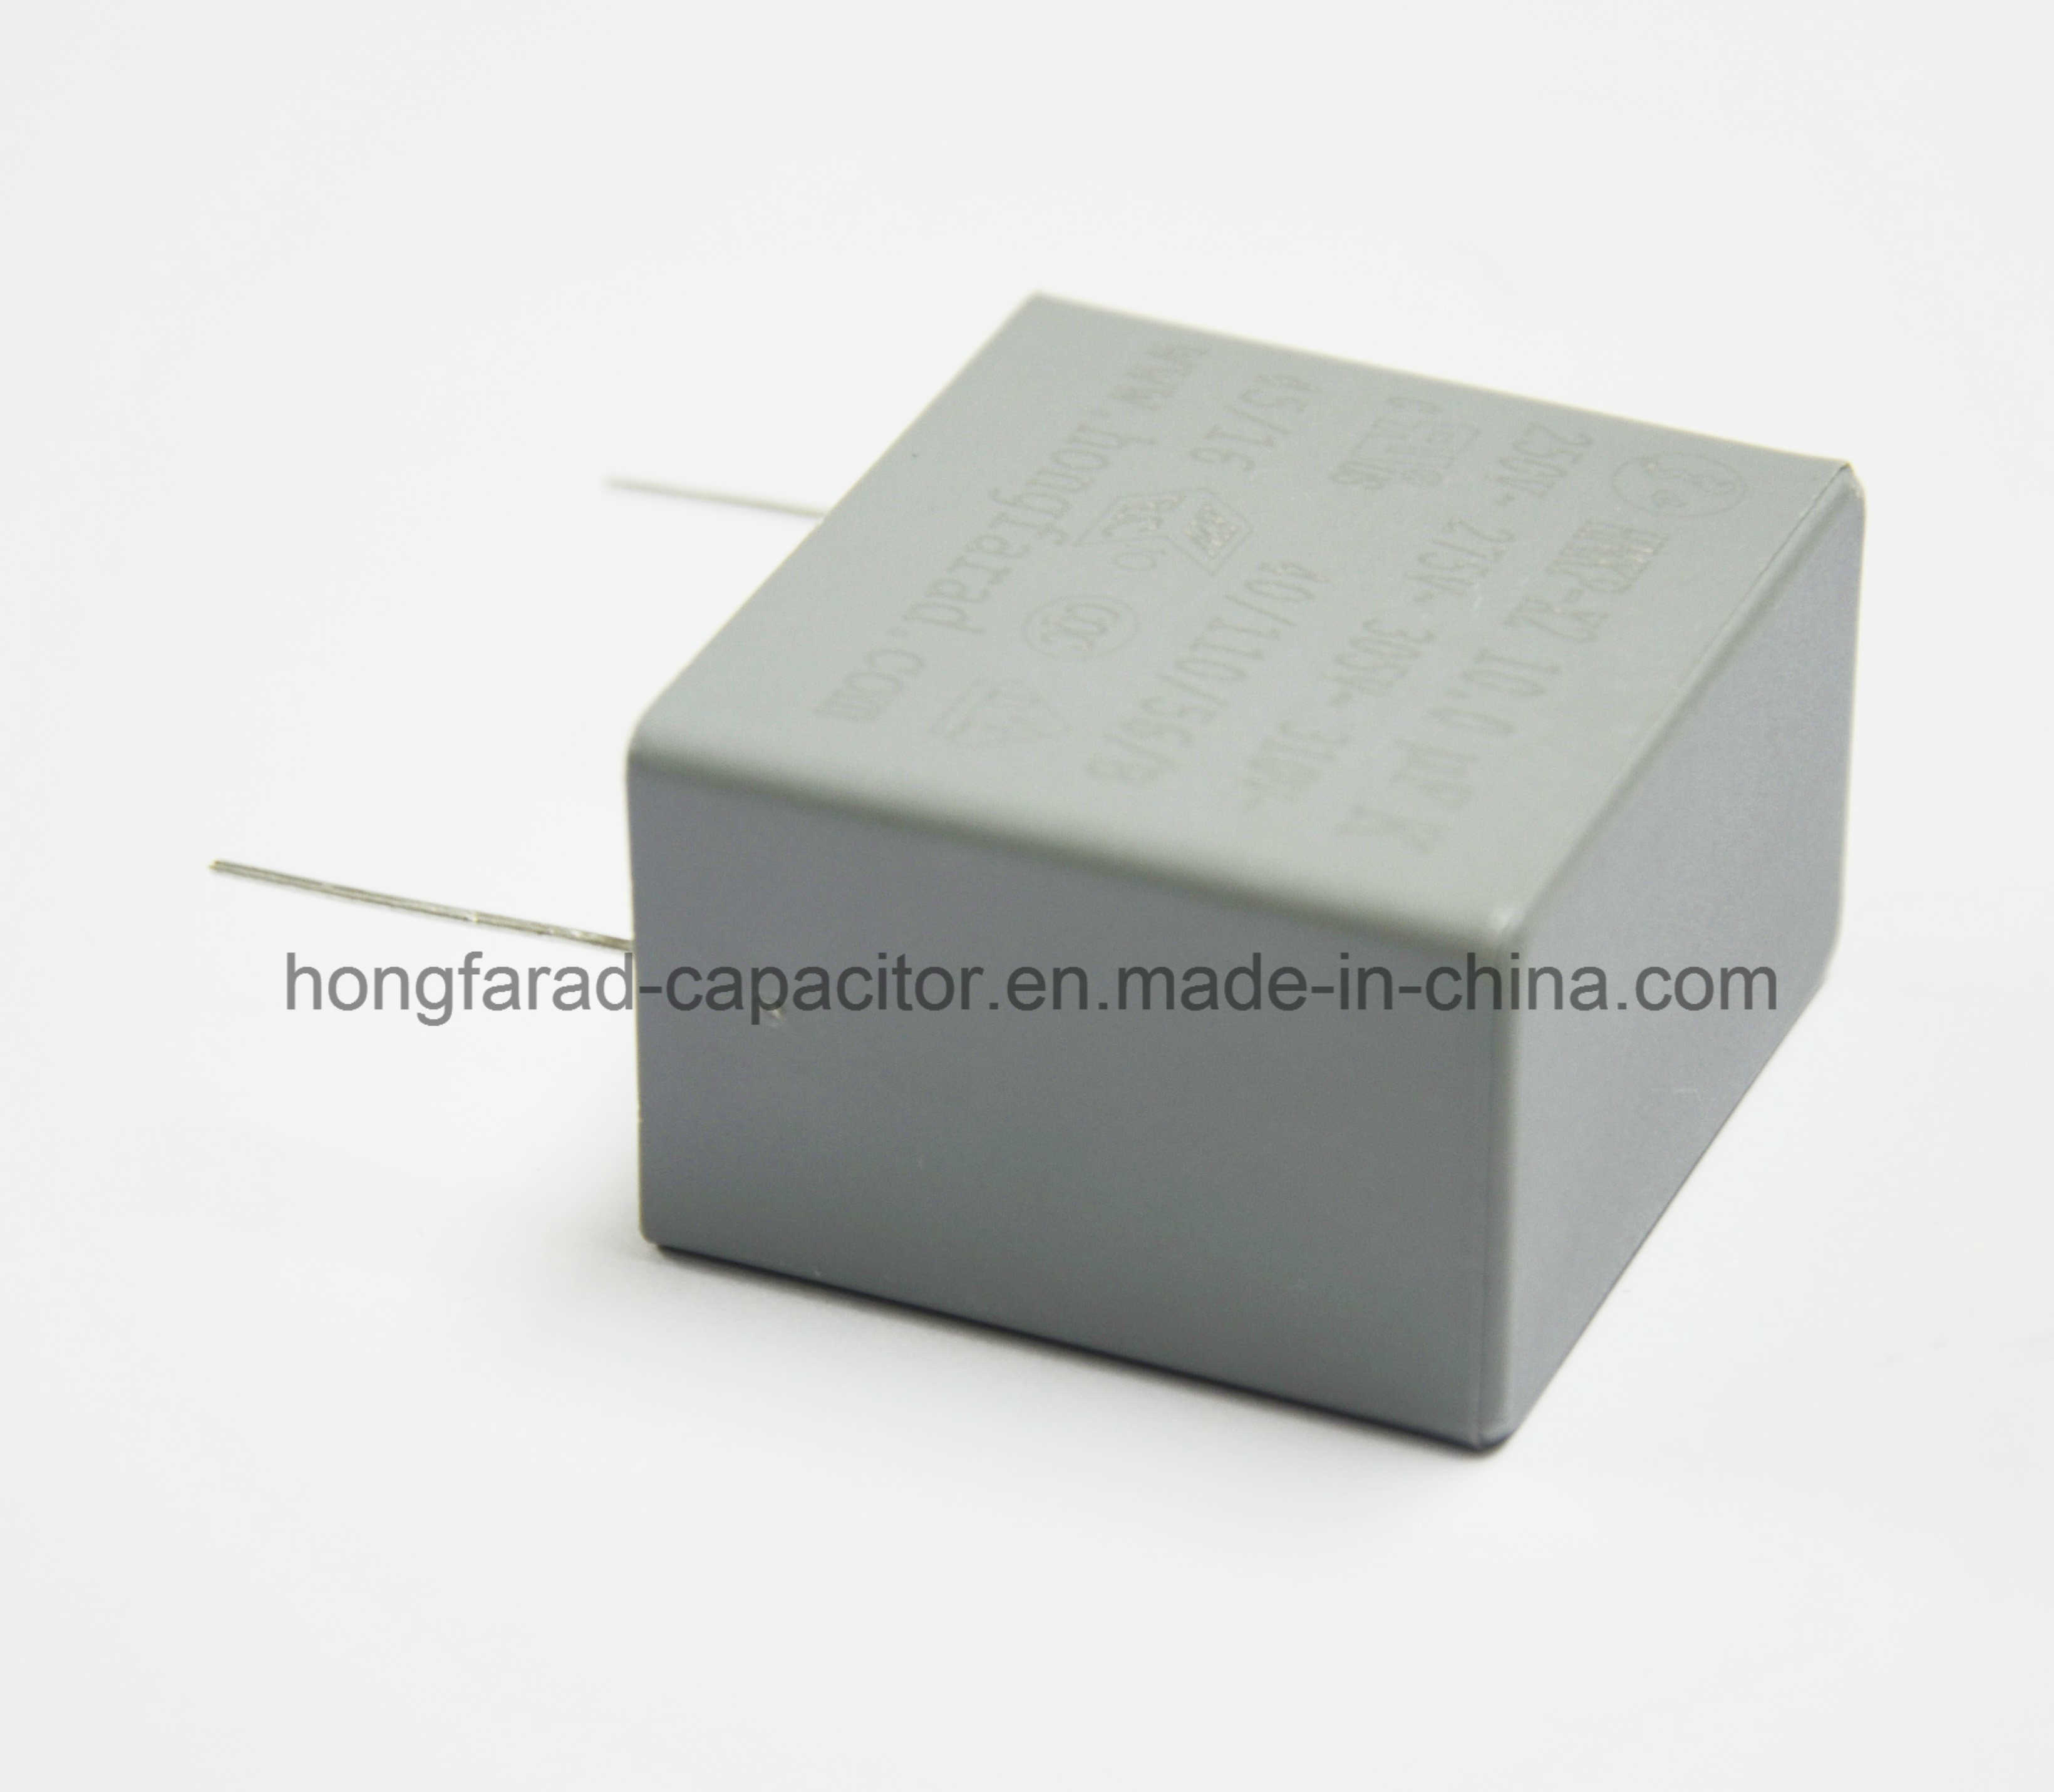 Cbb62 Capacitor X2 Class Film Capacitor High Quality MKP